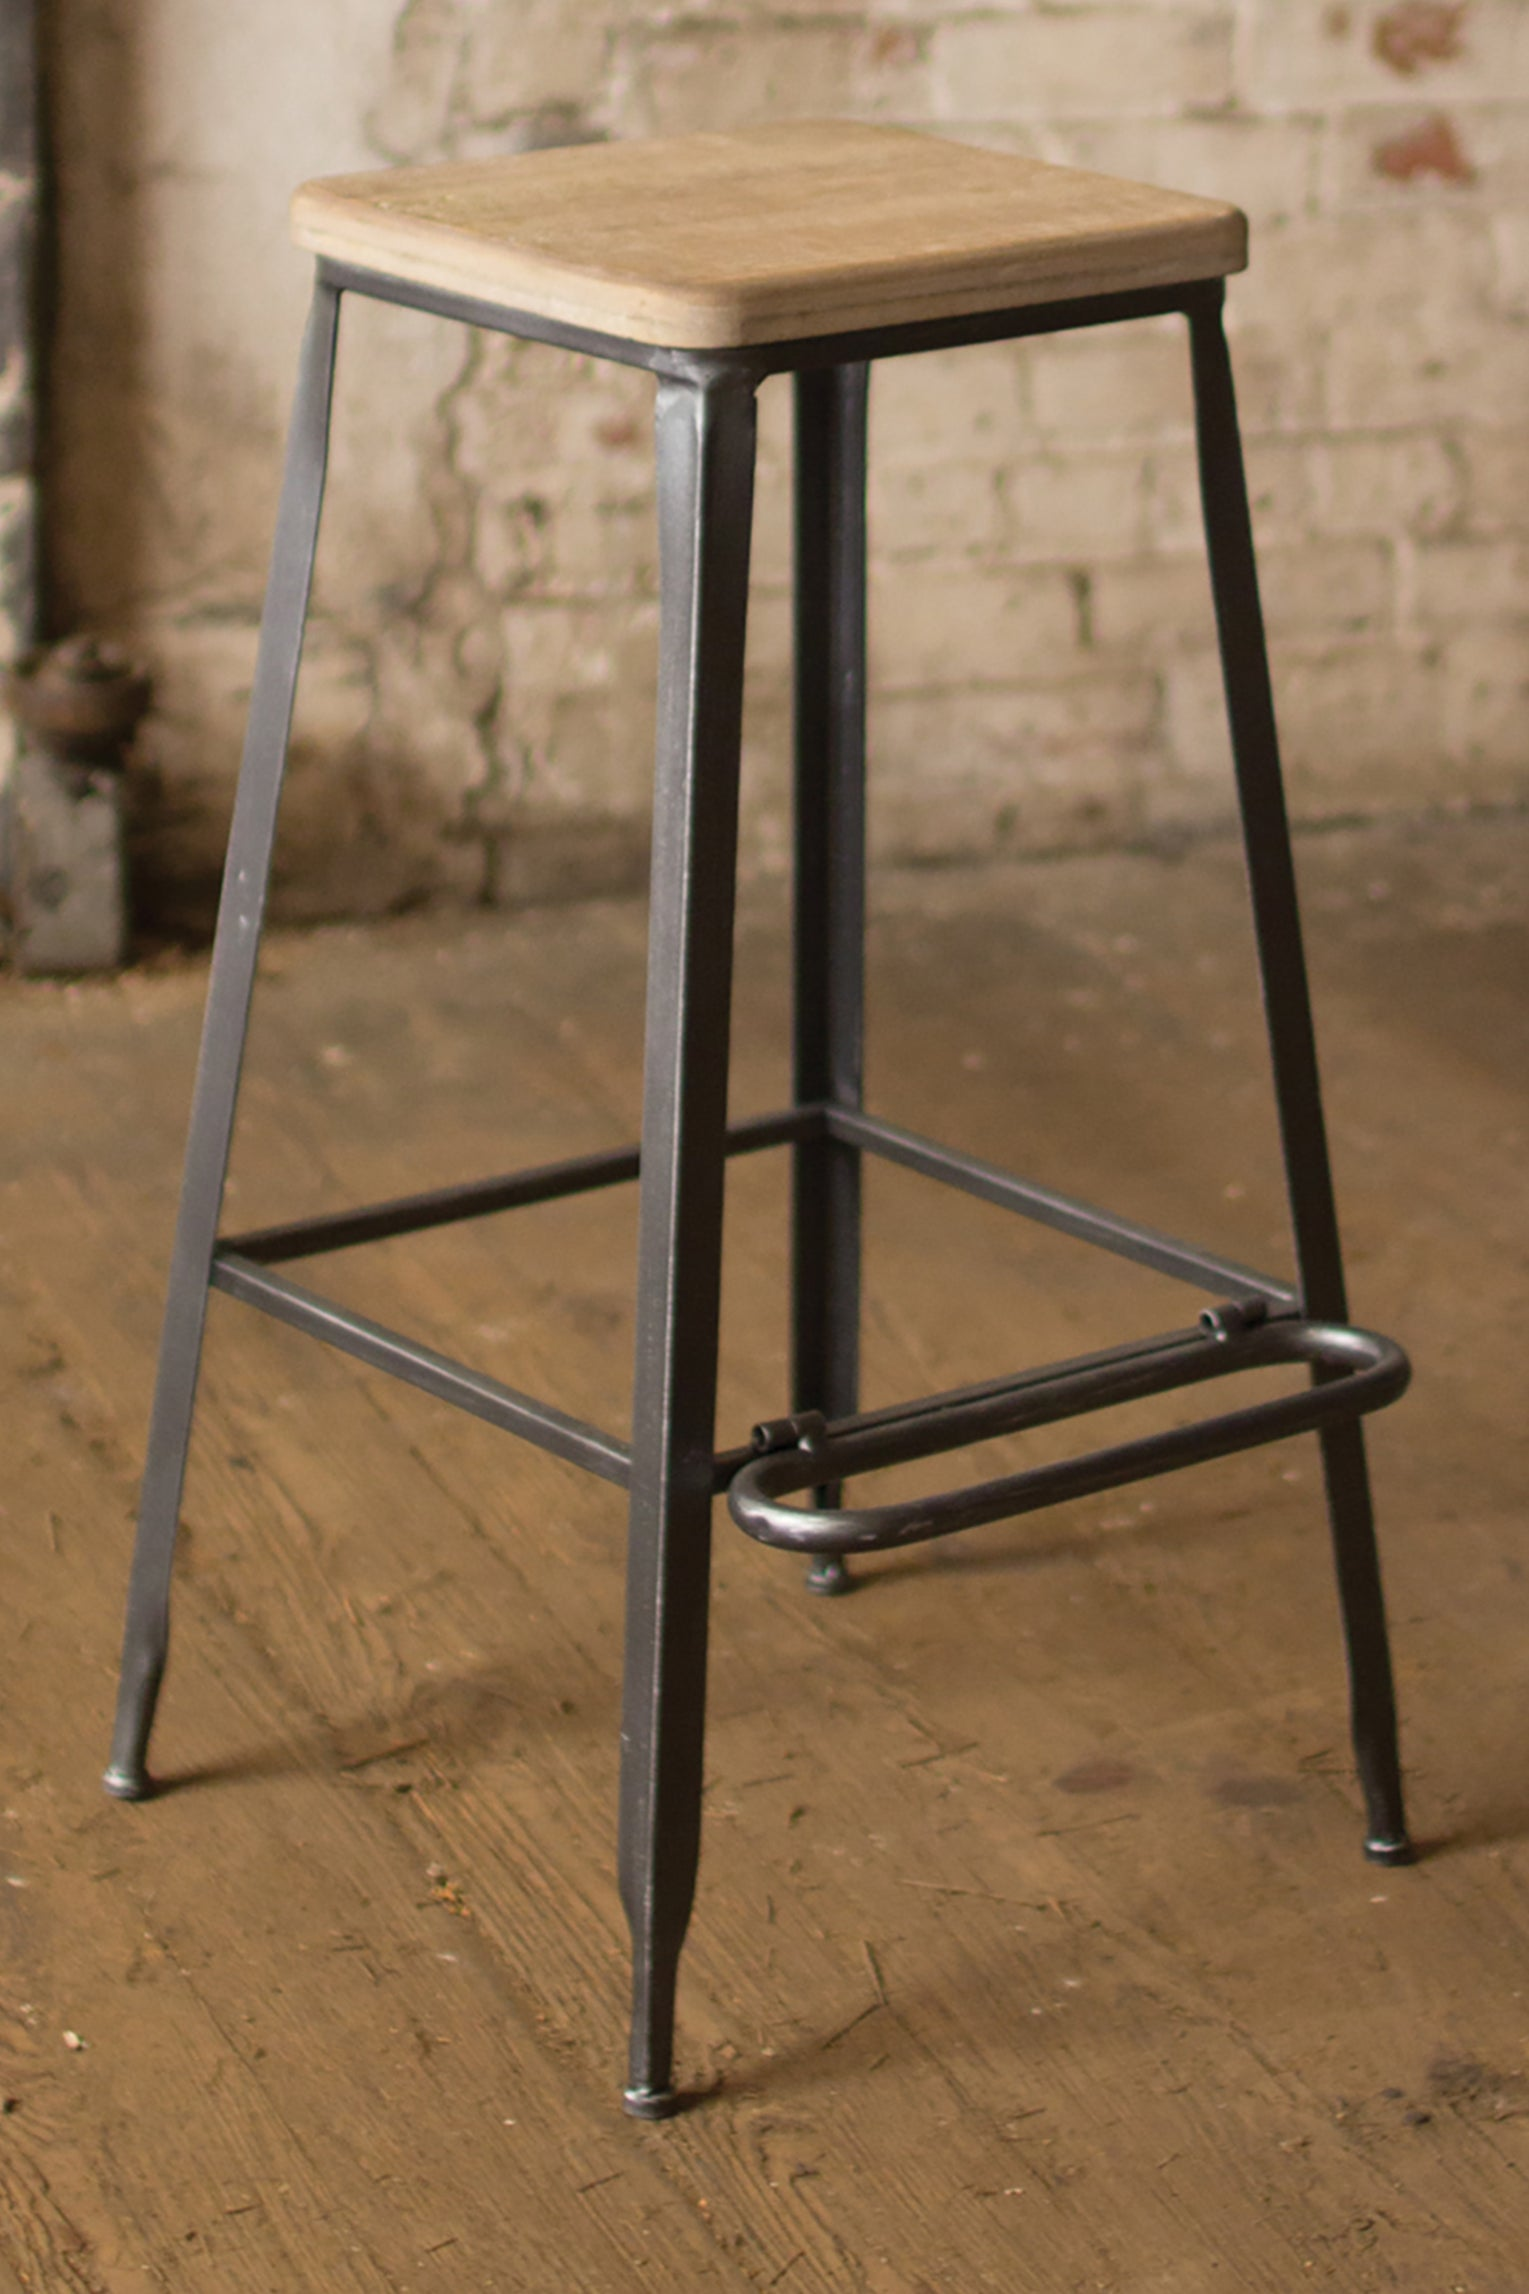 Outstanding Industrial Modern Metal Bar Stool With Wood Seat Machost Co Dining Chair Design Ideas Machostcouk